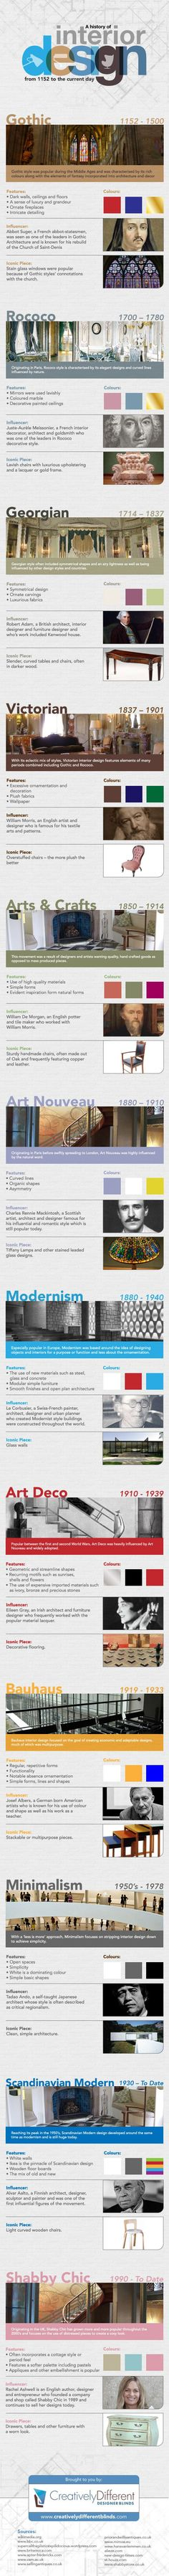 Infographic: The History of Interior Design | Design Build Ideas